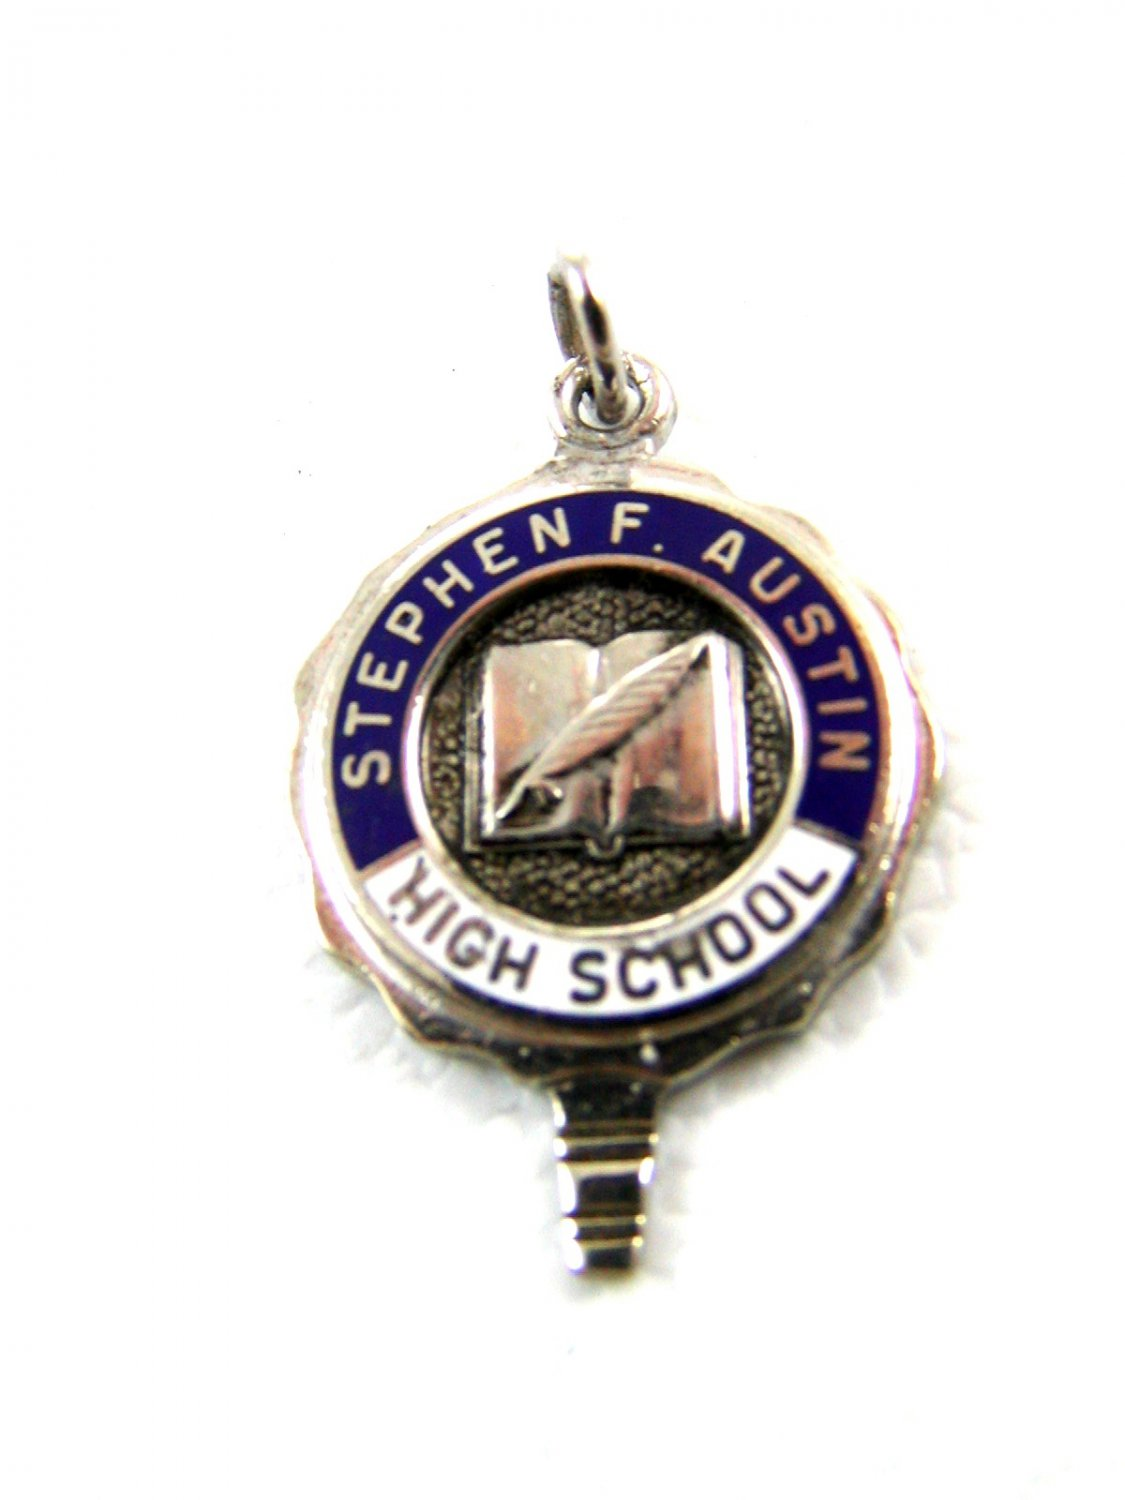 Stephen F. Austin High School Houston Texas Charm / Pendant / Key 52914